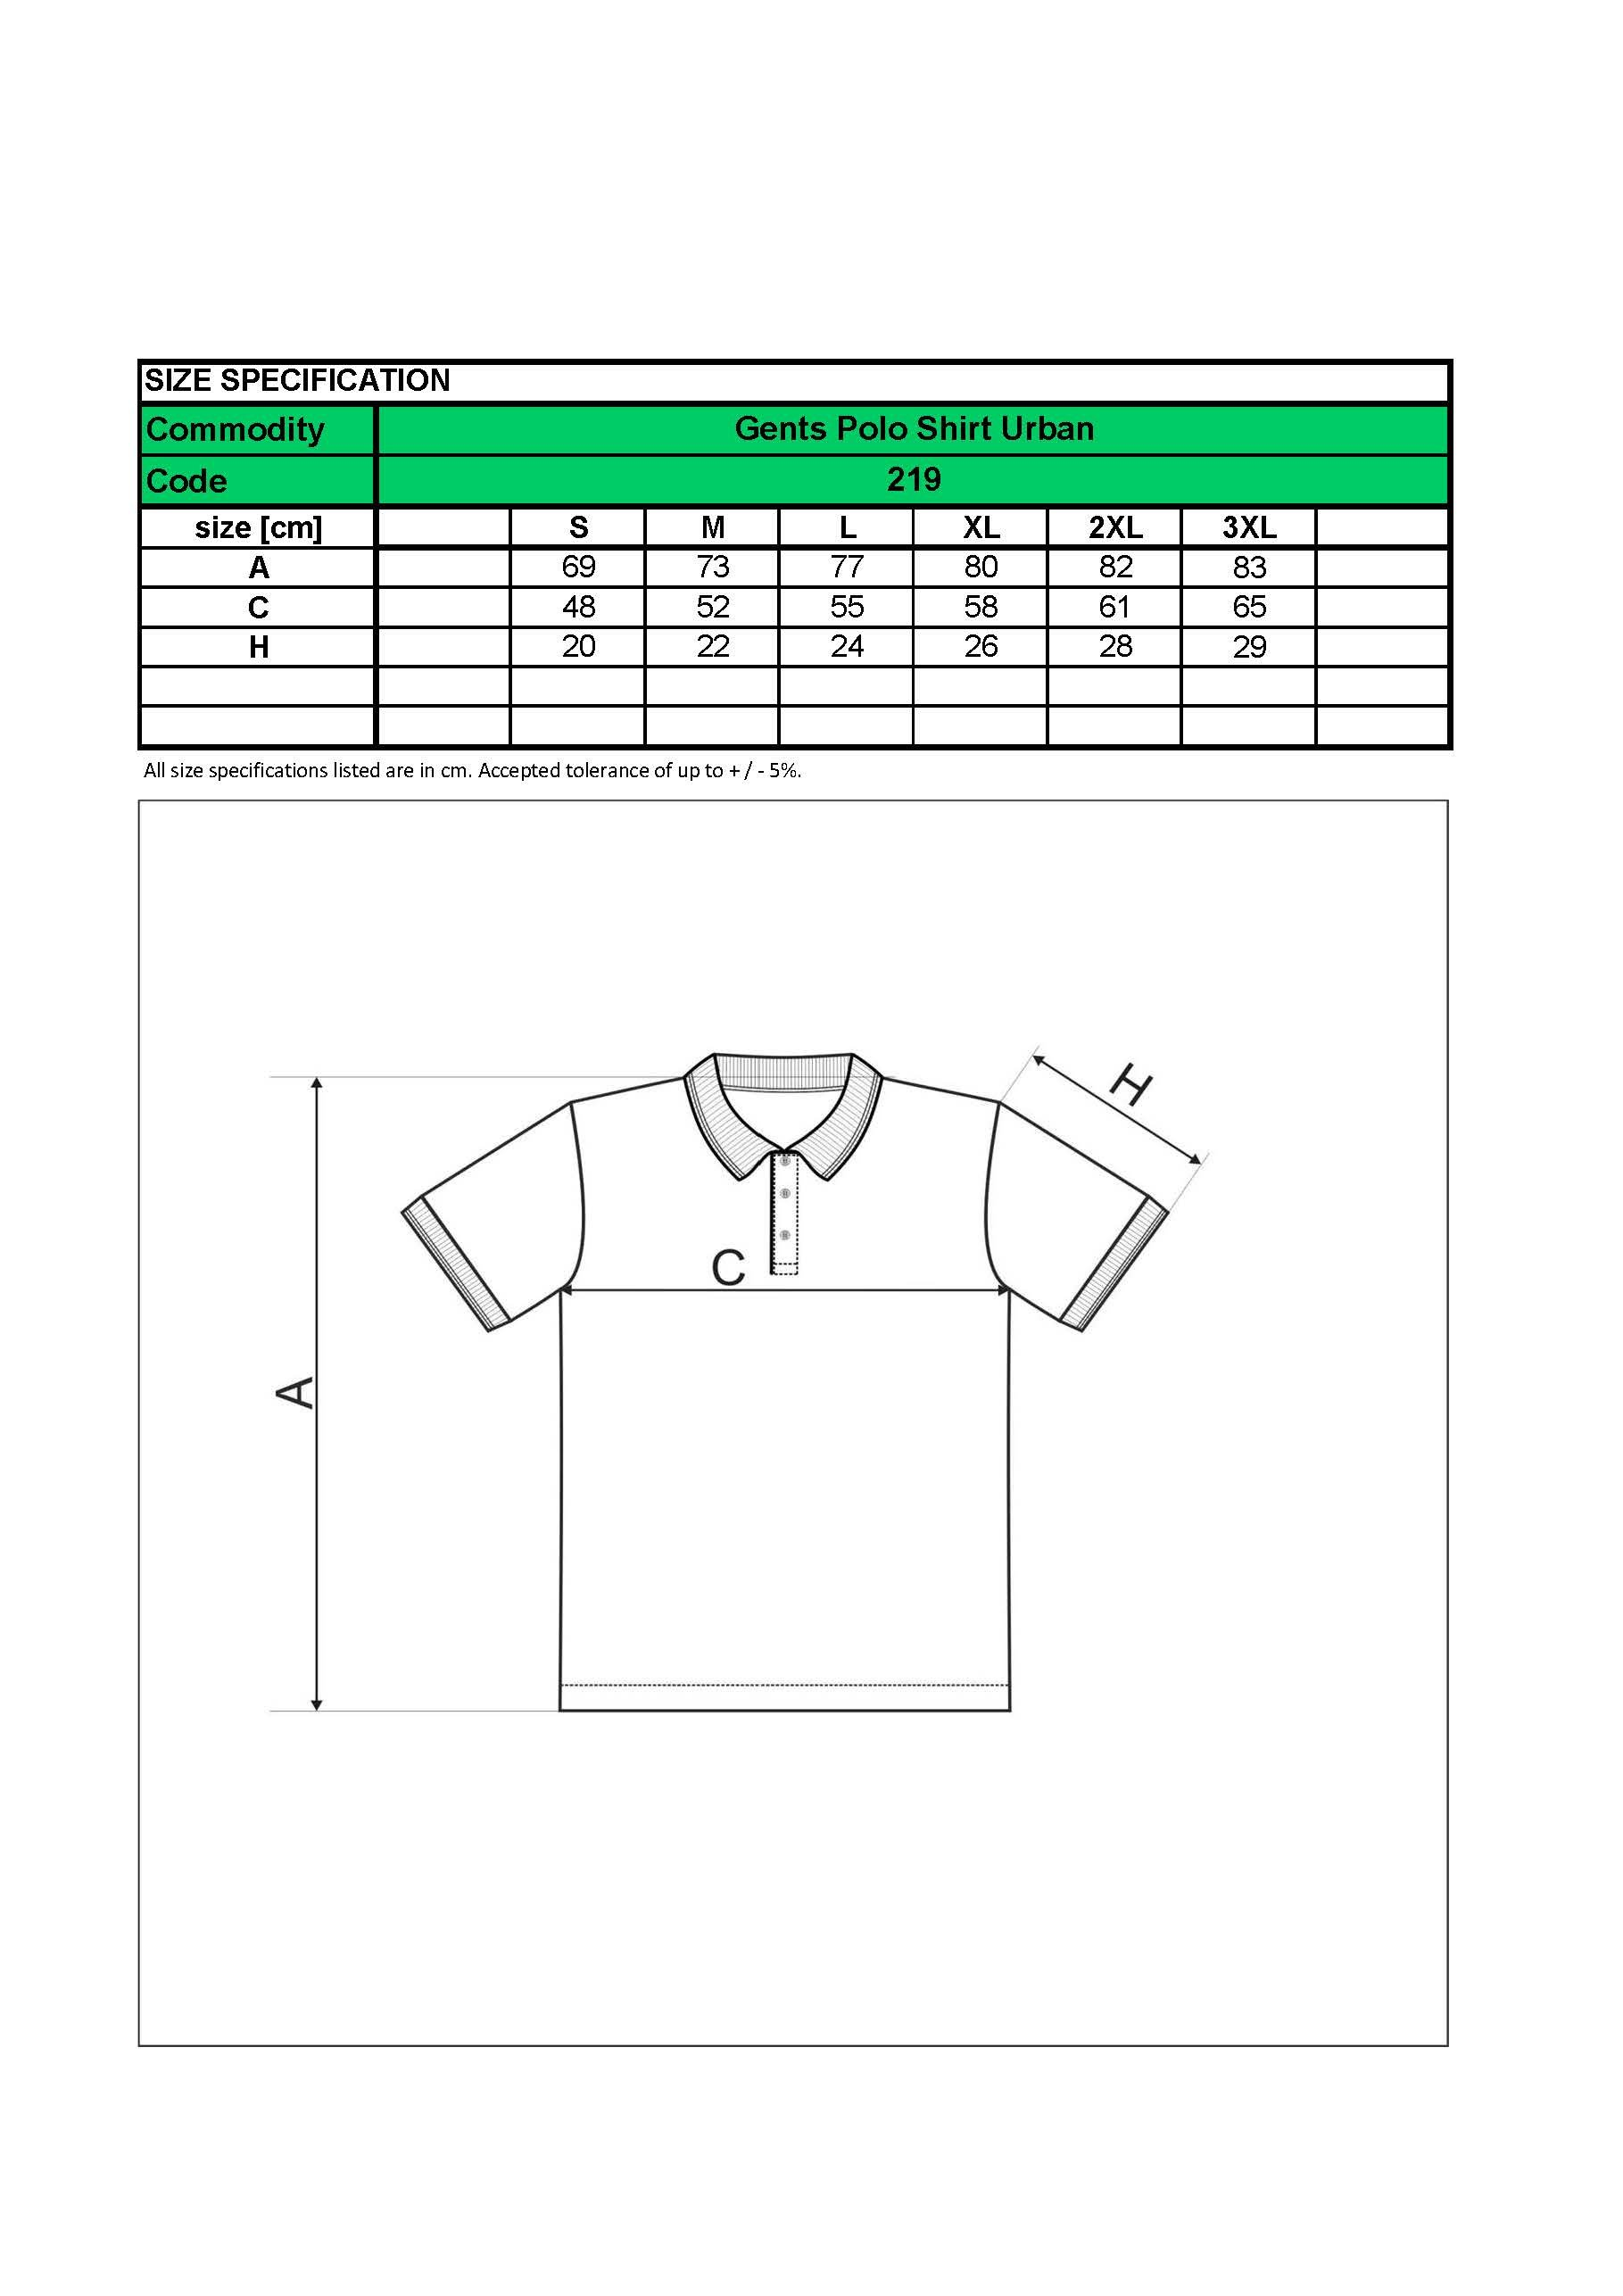 Custom Embroidered Promotional white  Men Polo Shirts 219 size chart- www.ontimeprint.co.uk